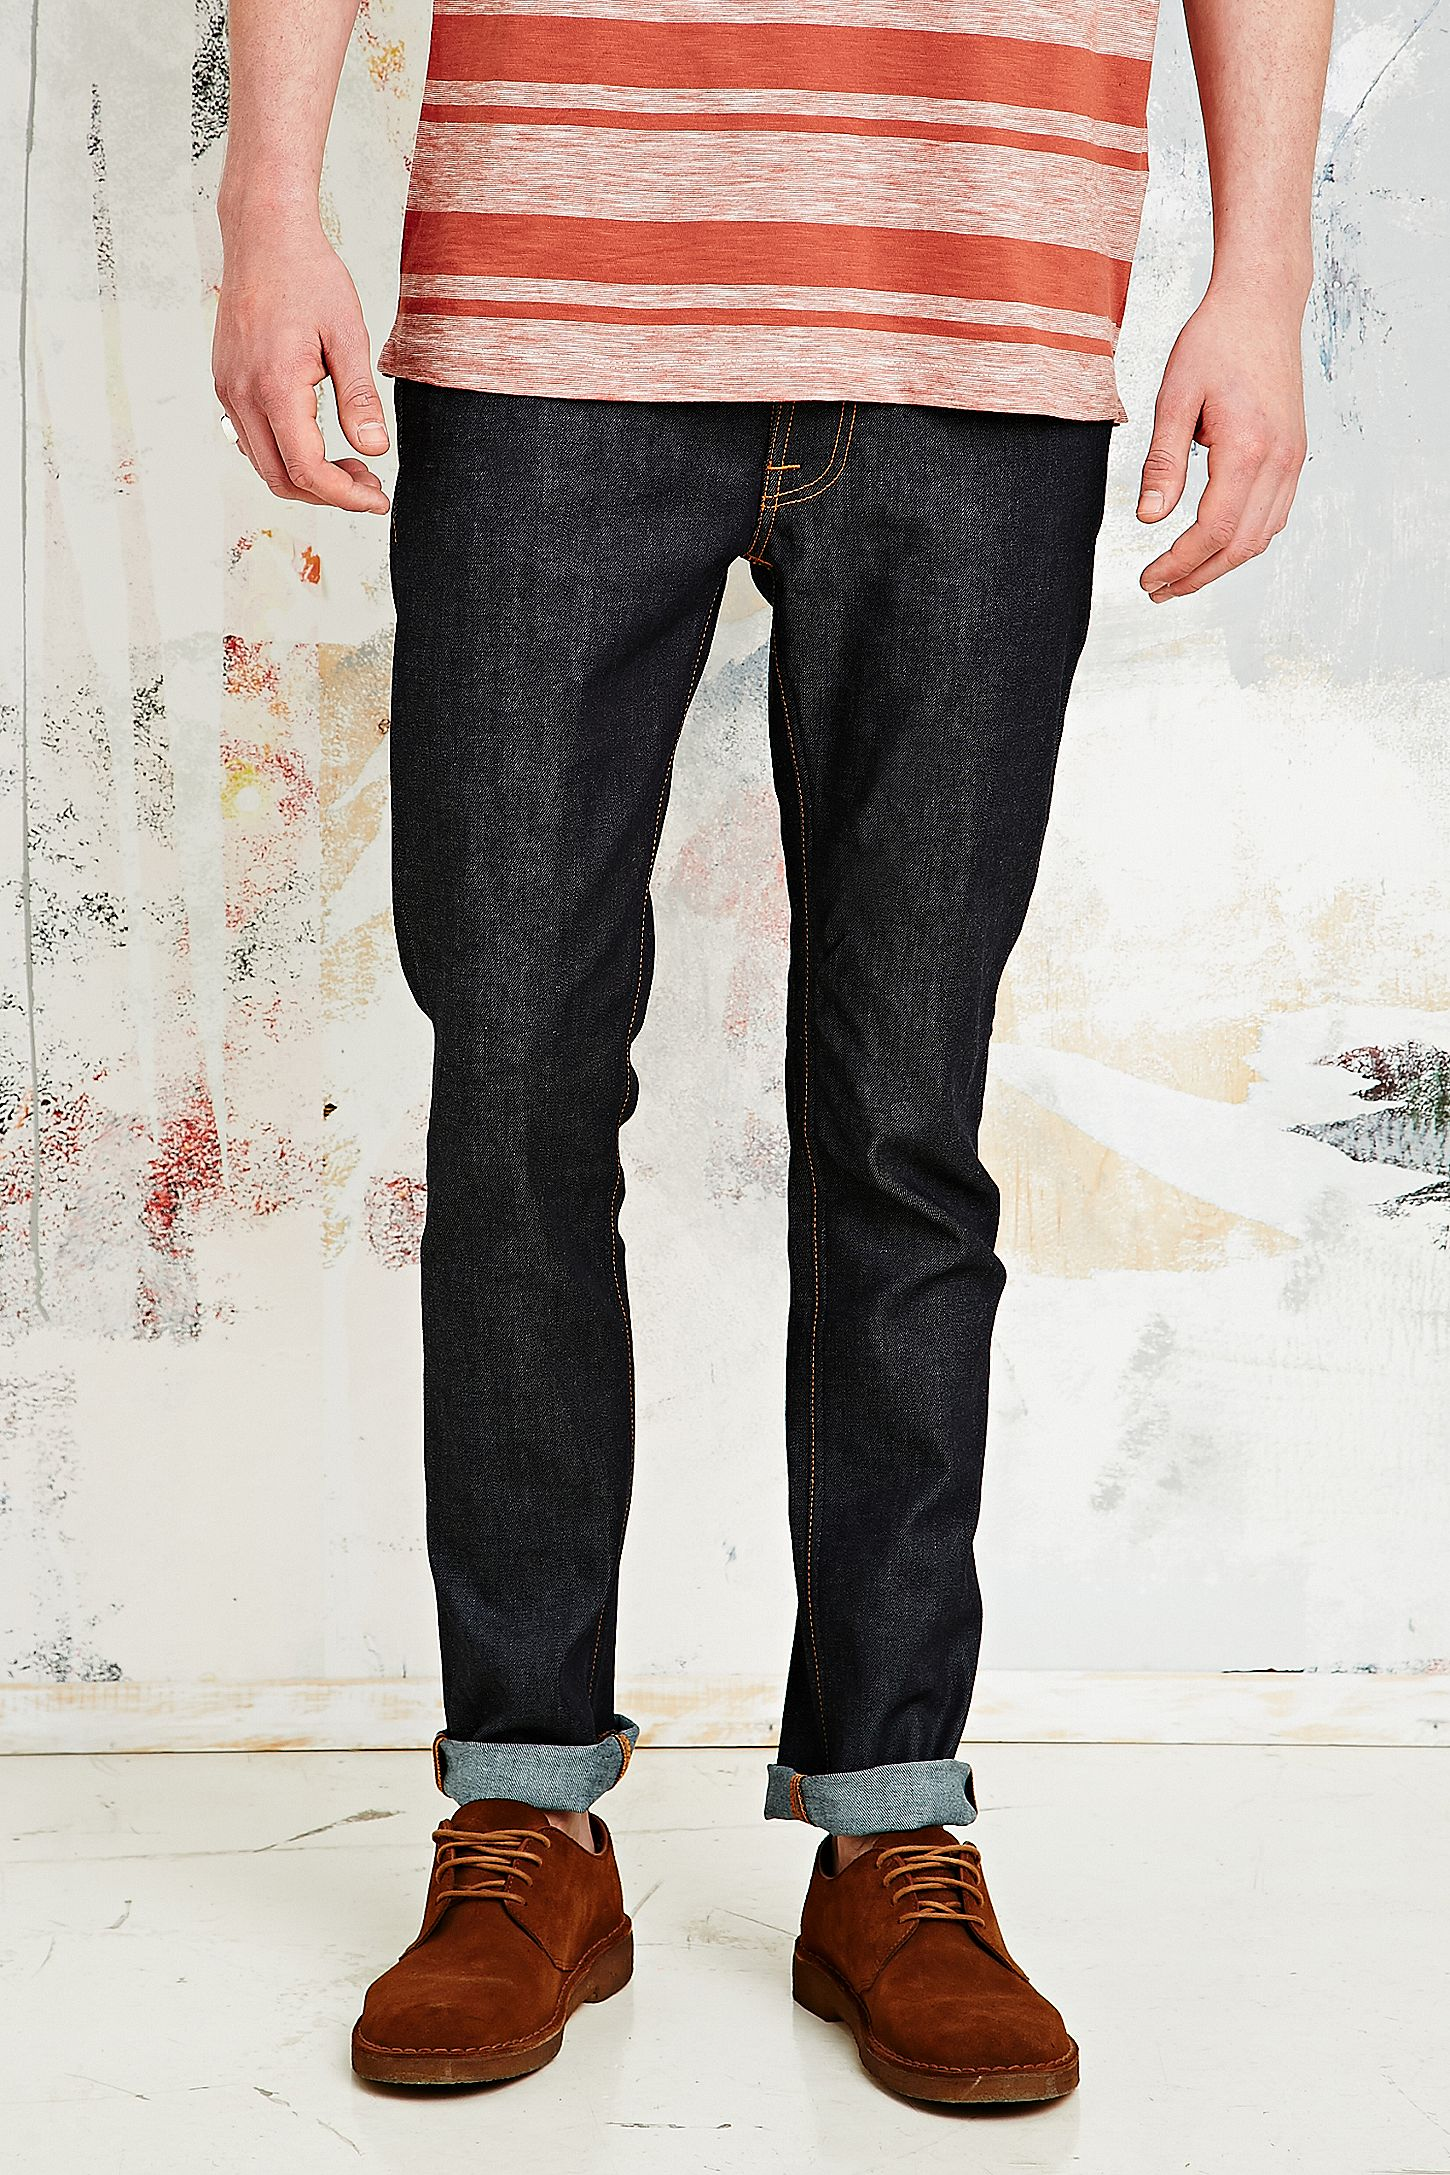 Nudie Jeans Tape Ted Jeans in 16 Drip Dry Indigo  180ffdfd4